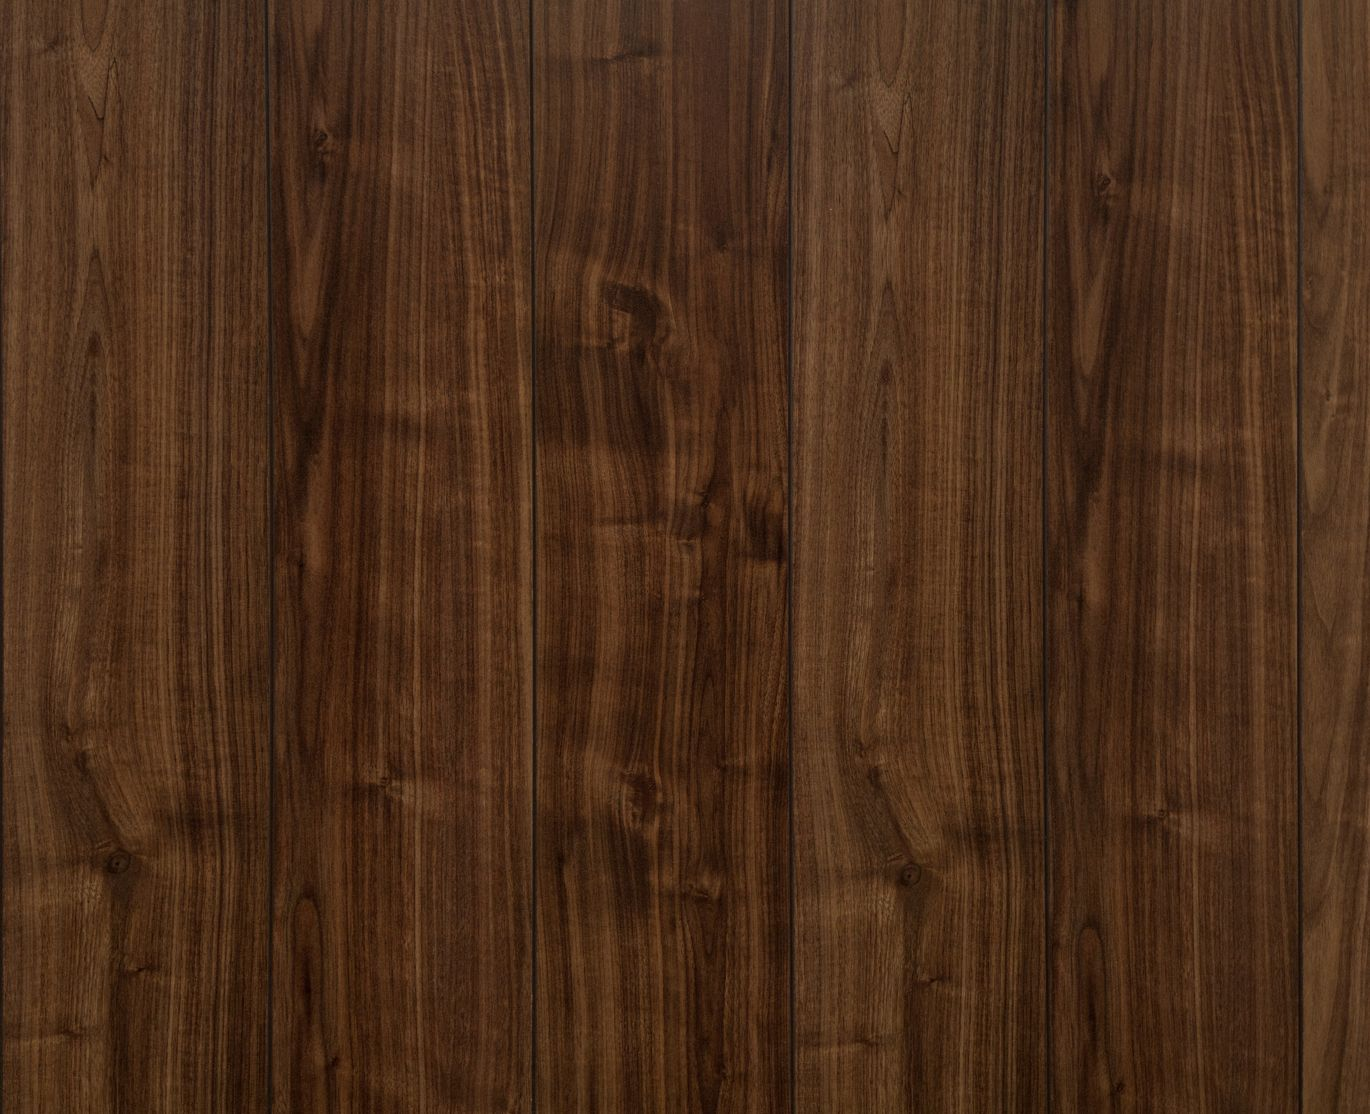 Walnut Wood Texture Flooring Parador Walnut Wood Texture Wood Texture Seamless Dark Wood Texture